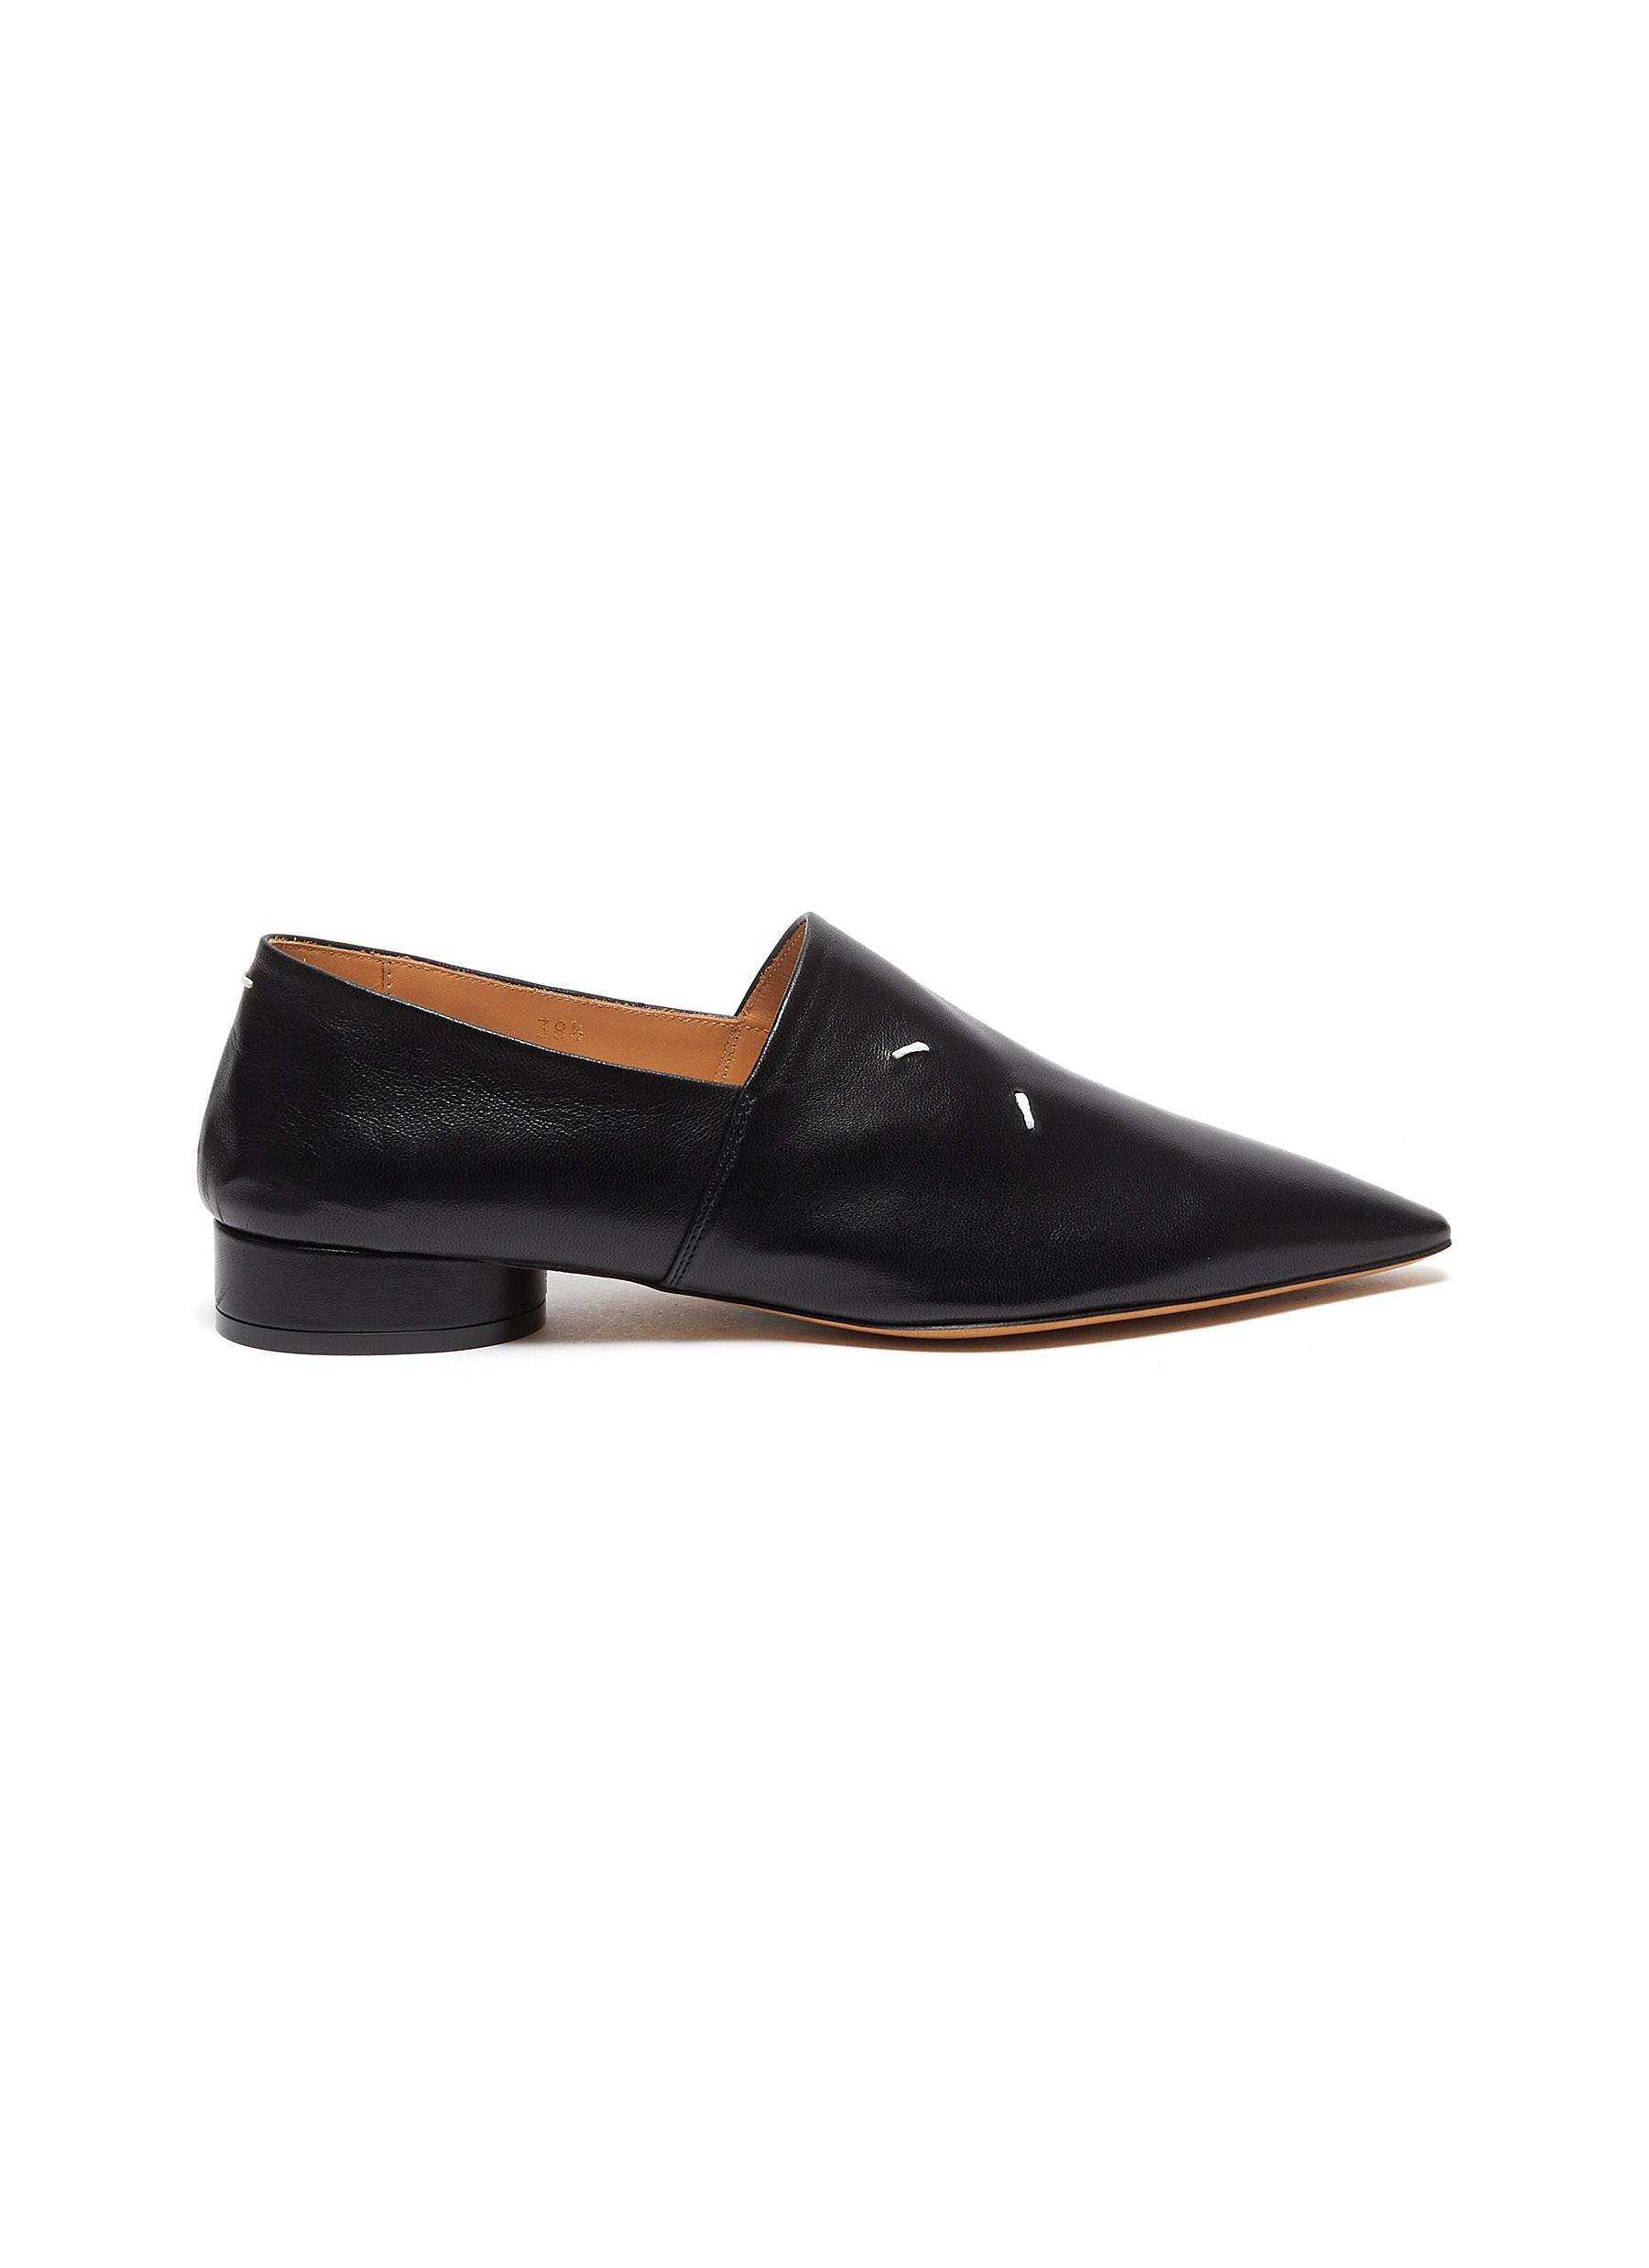 Maison Margiela Flats Step pointed toe contrast stitch leather mules